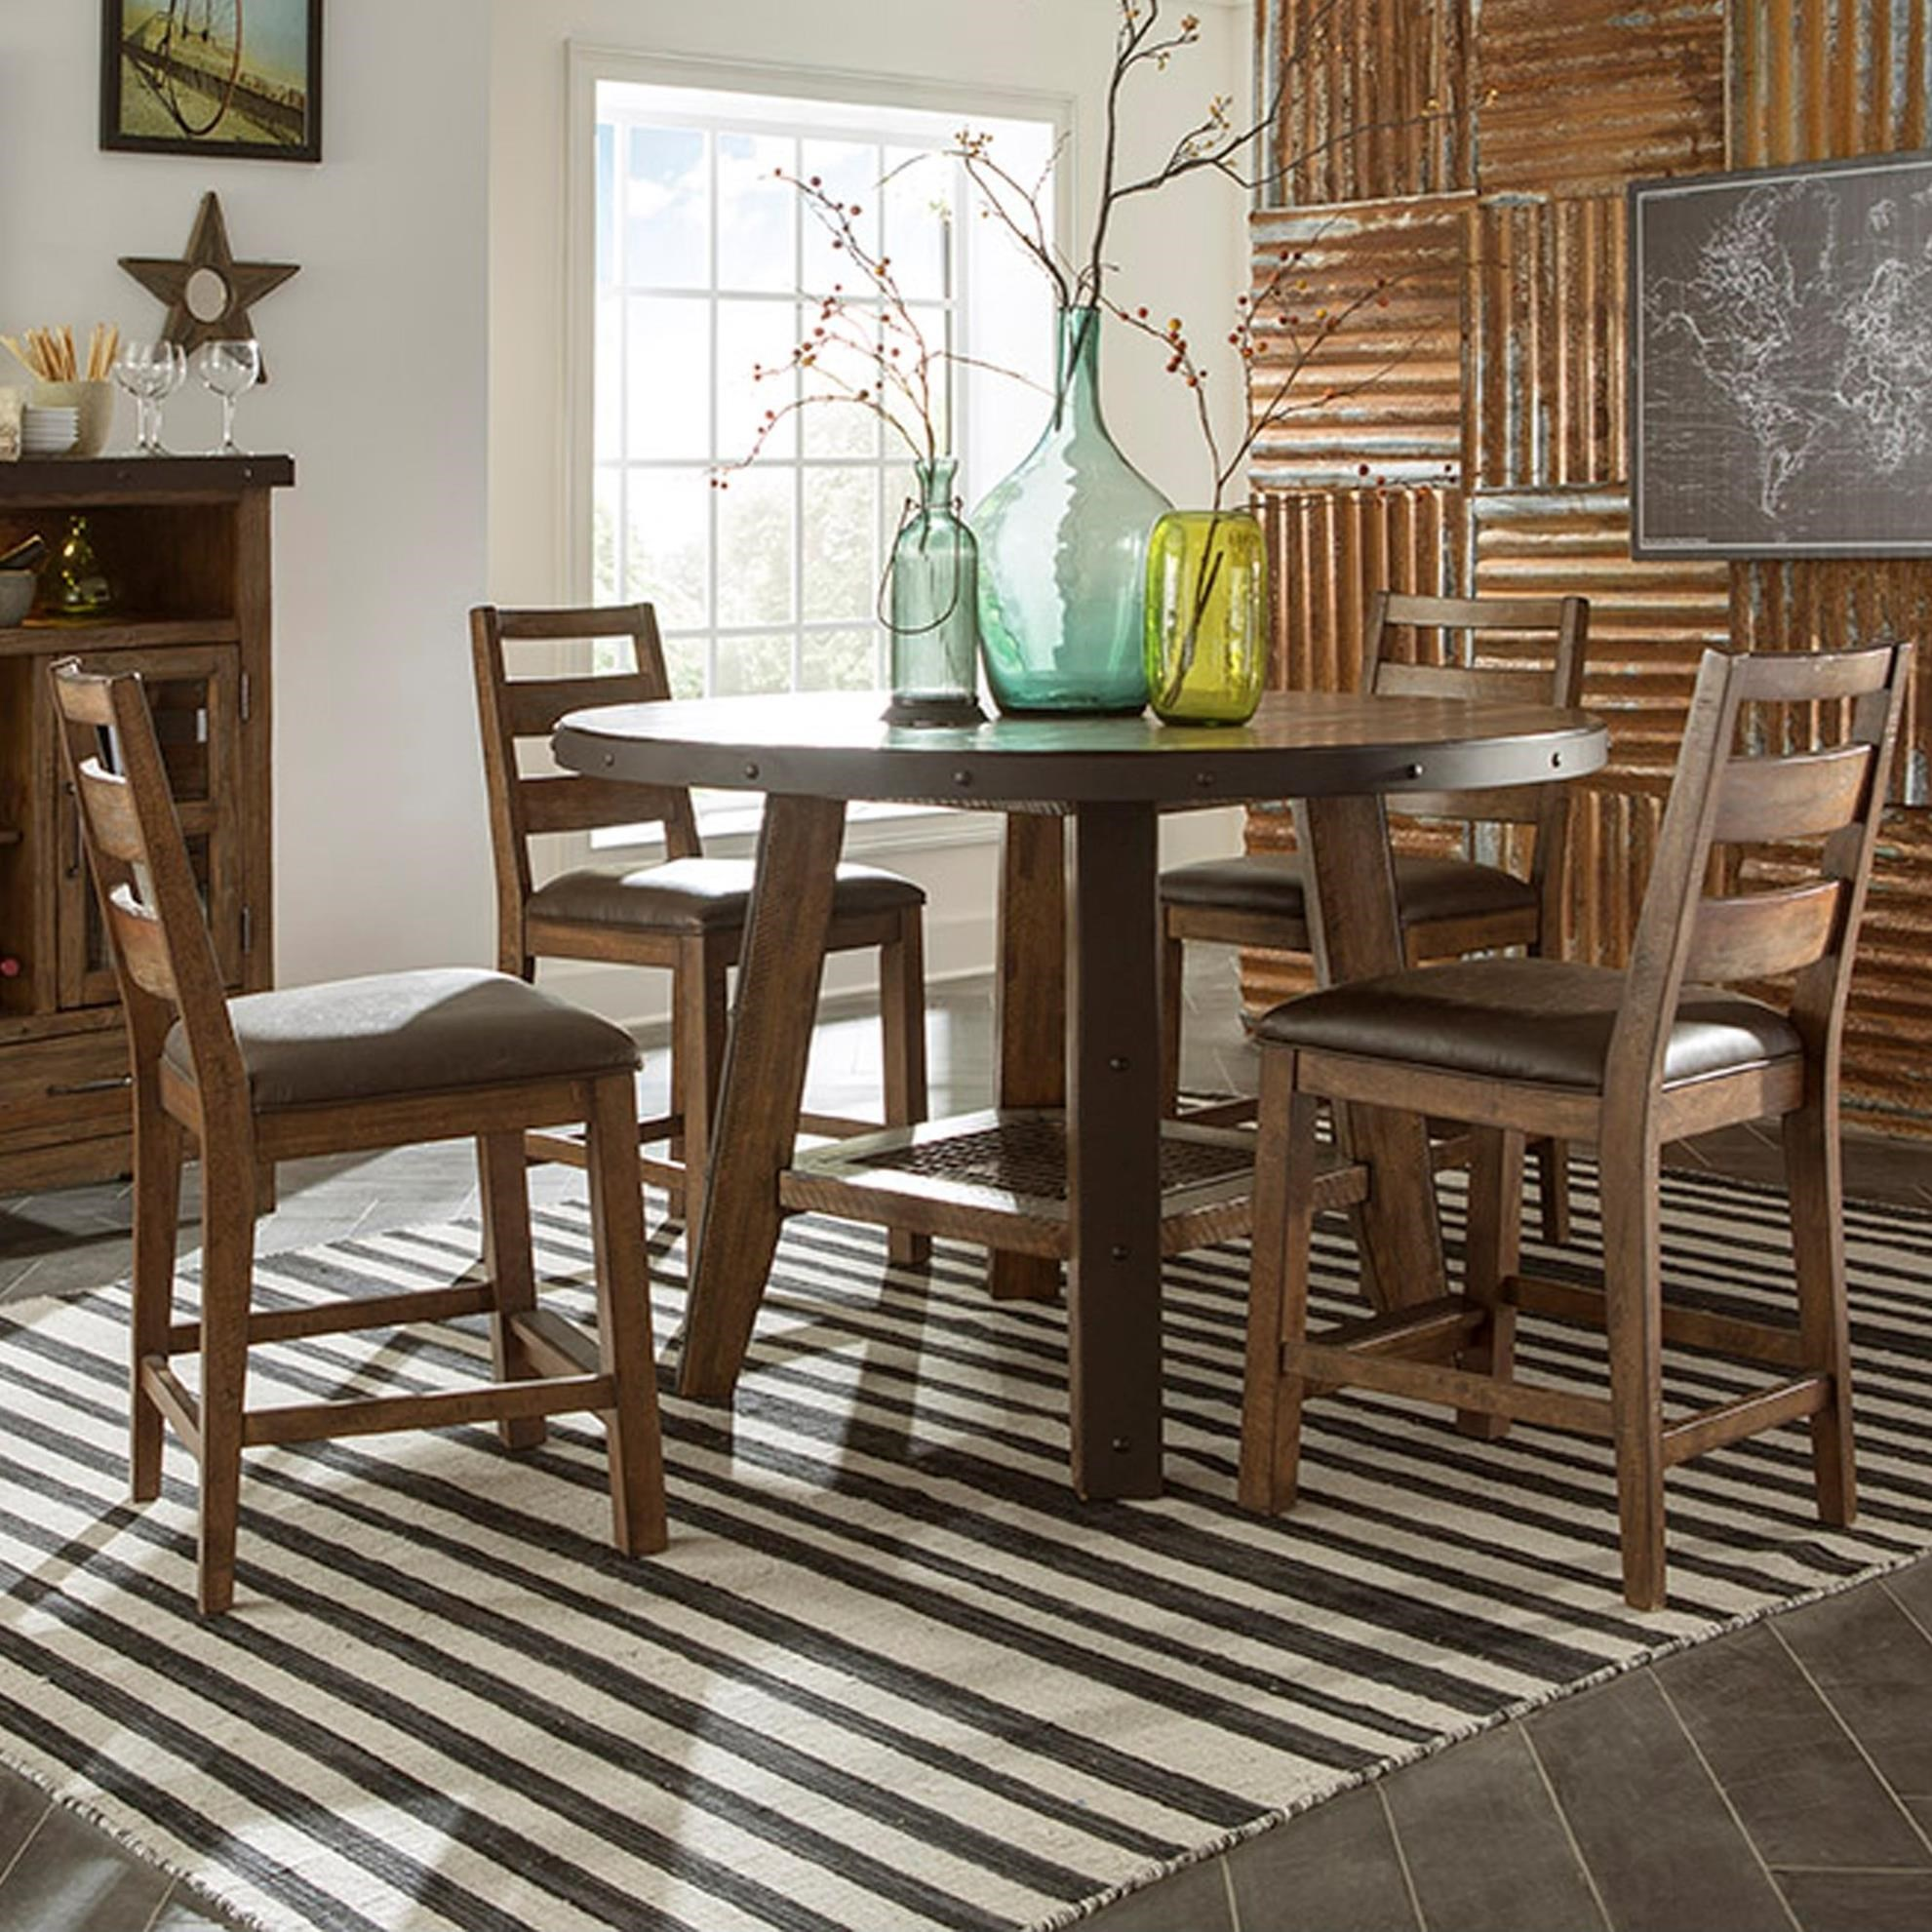 Taos 5 Piece Round Counter Table Set by Intercon at Fisher Home Furnishings